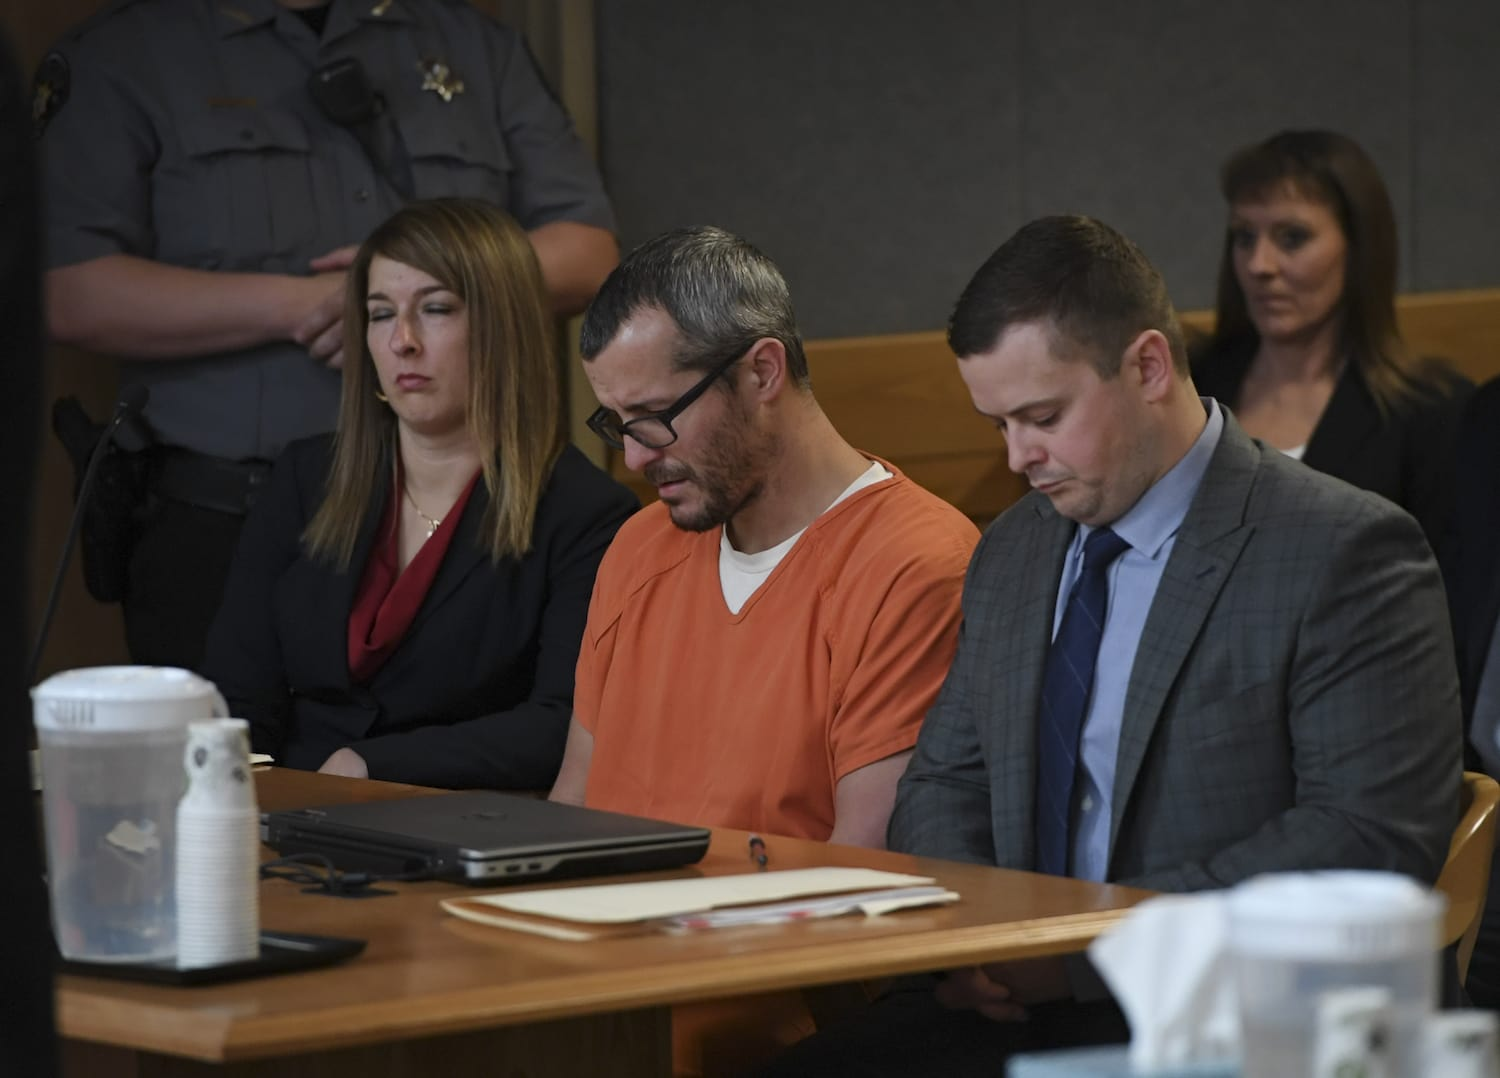 Chris Watts entered a guilty plea last week in exchange for five life sentences without parole for the murders of his pregnant wife and daughters (Getty Images)